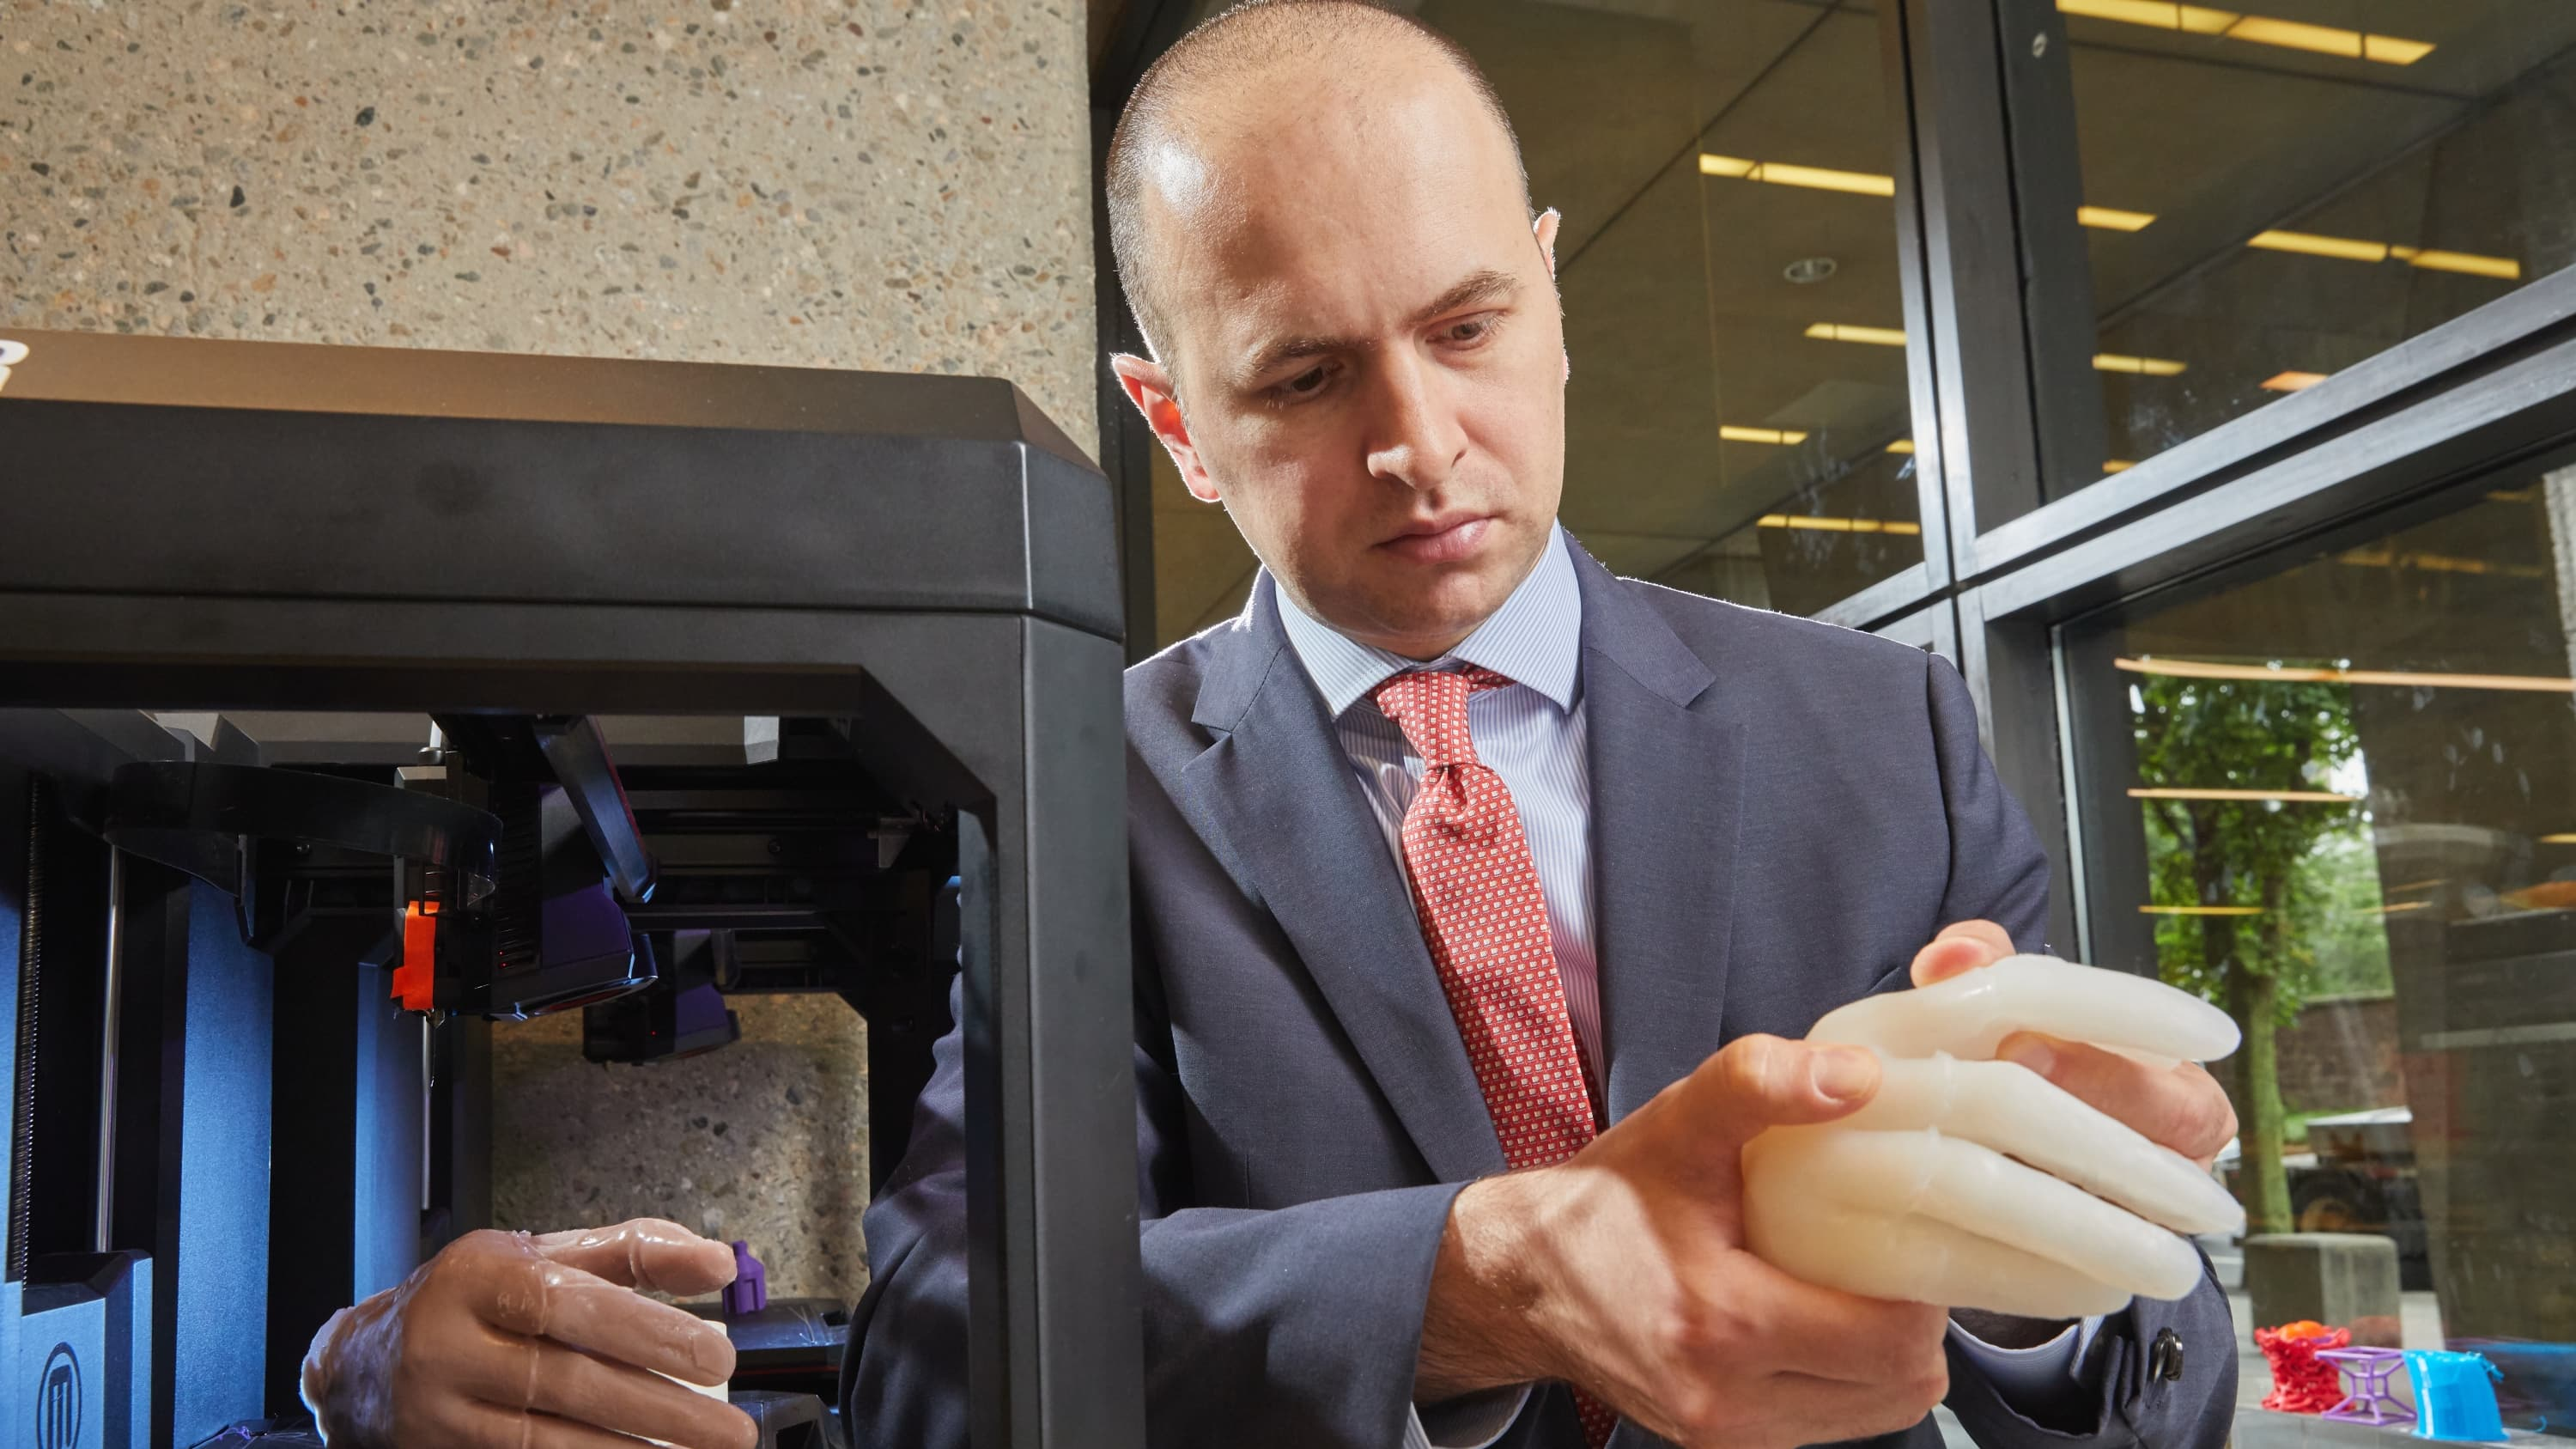 Dr. Adnan Prsic holding a 3D-printed model of a hand